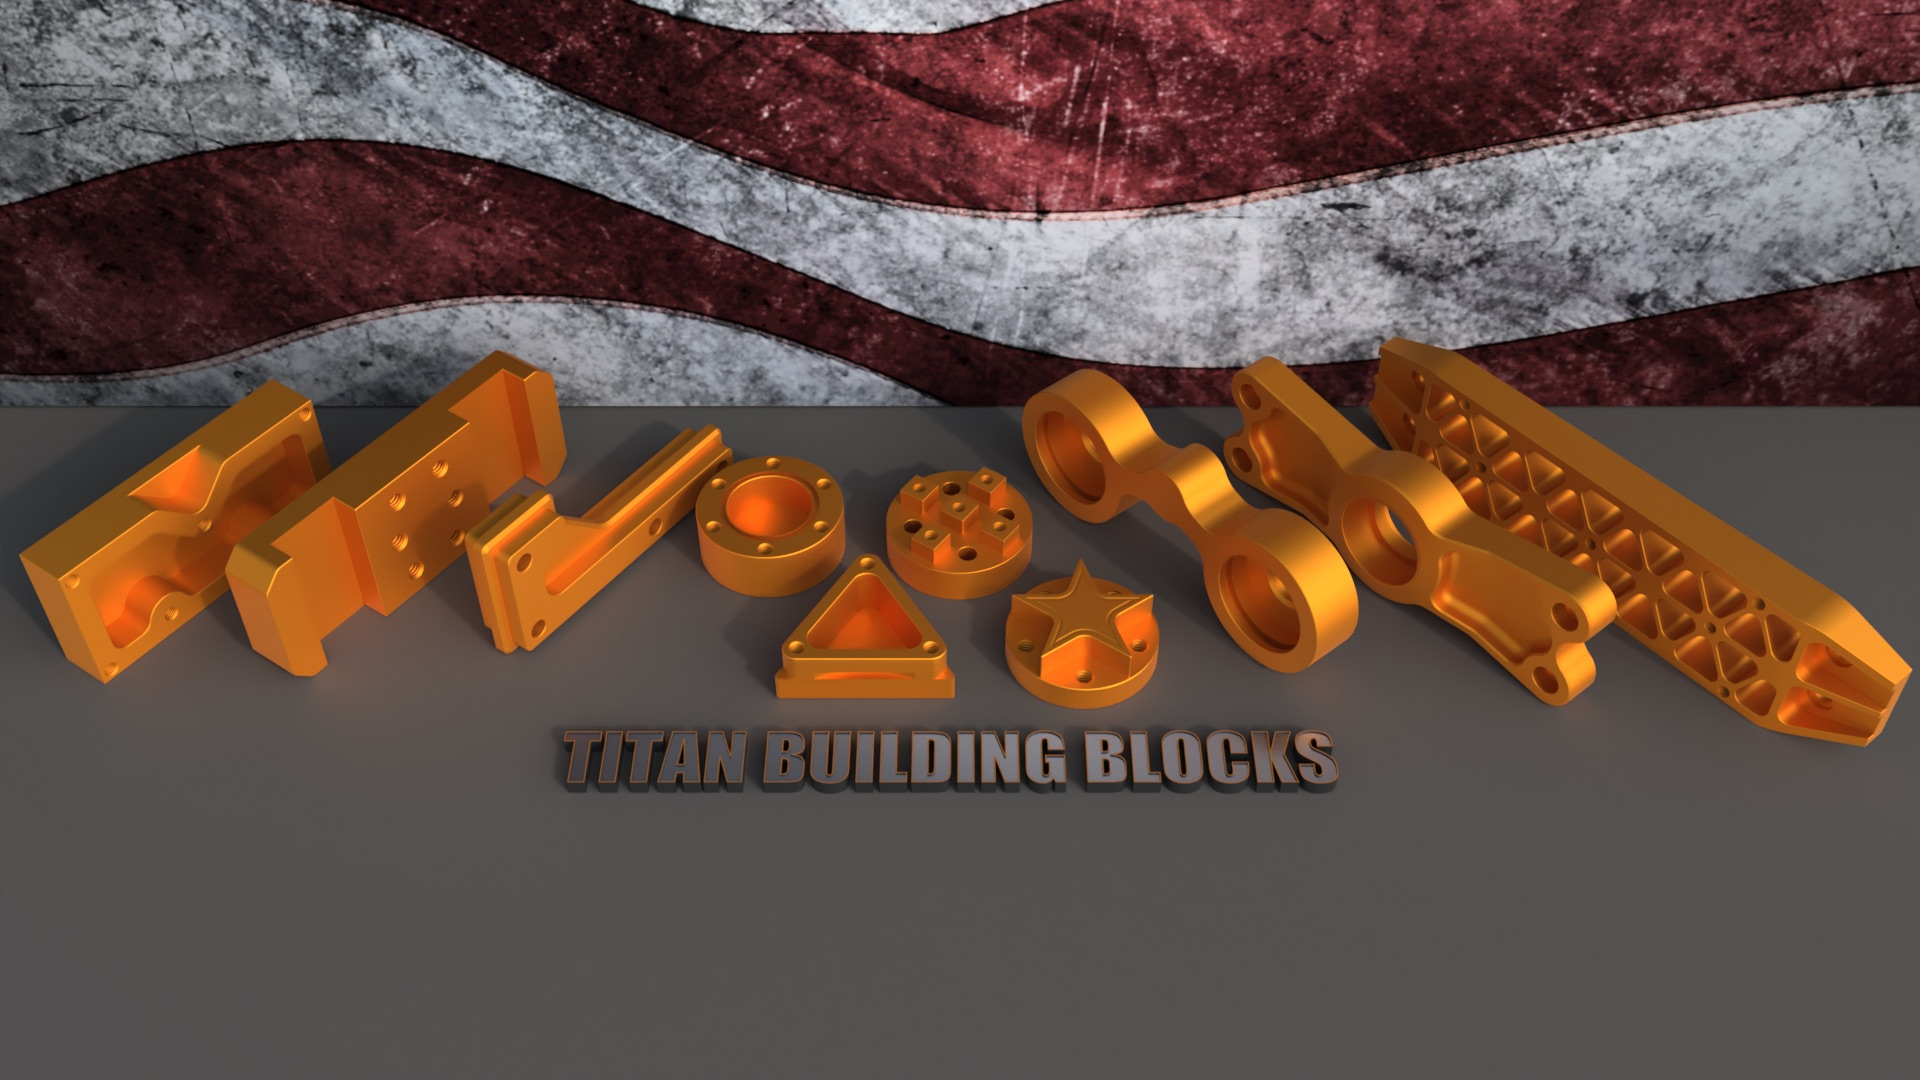 MILL - BUILDING BLOCKS Image